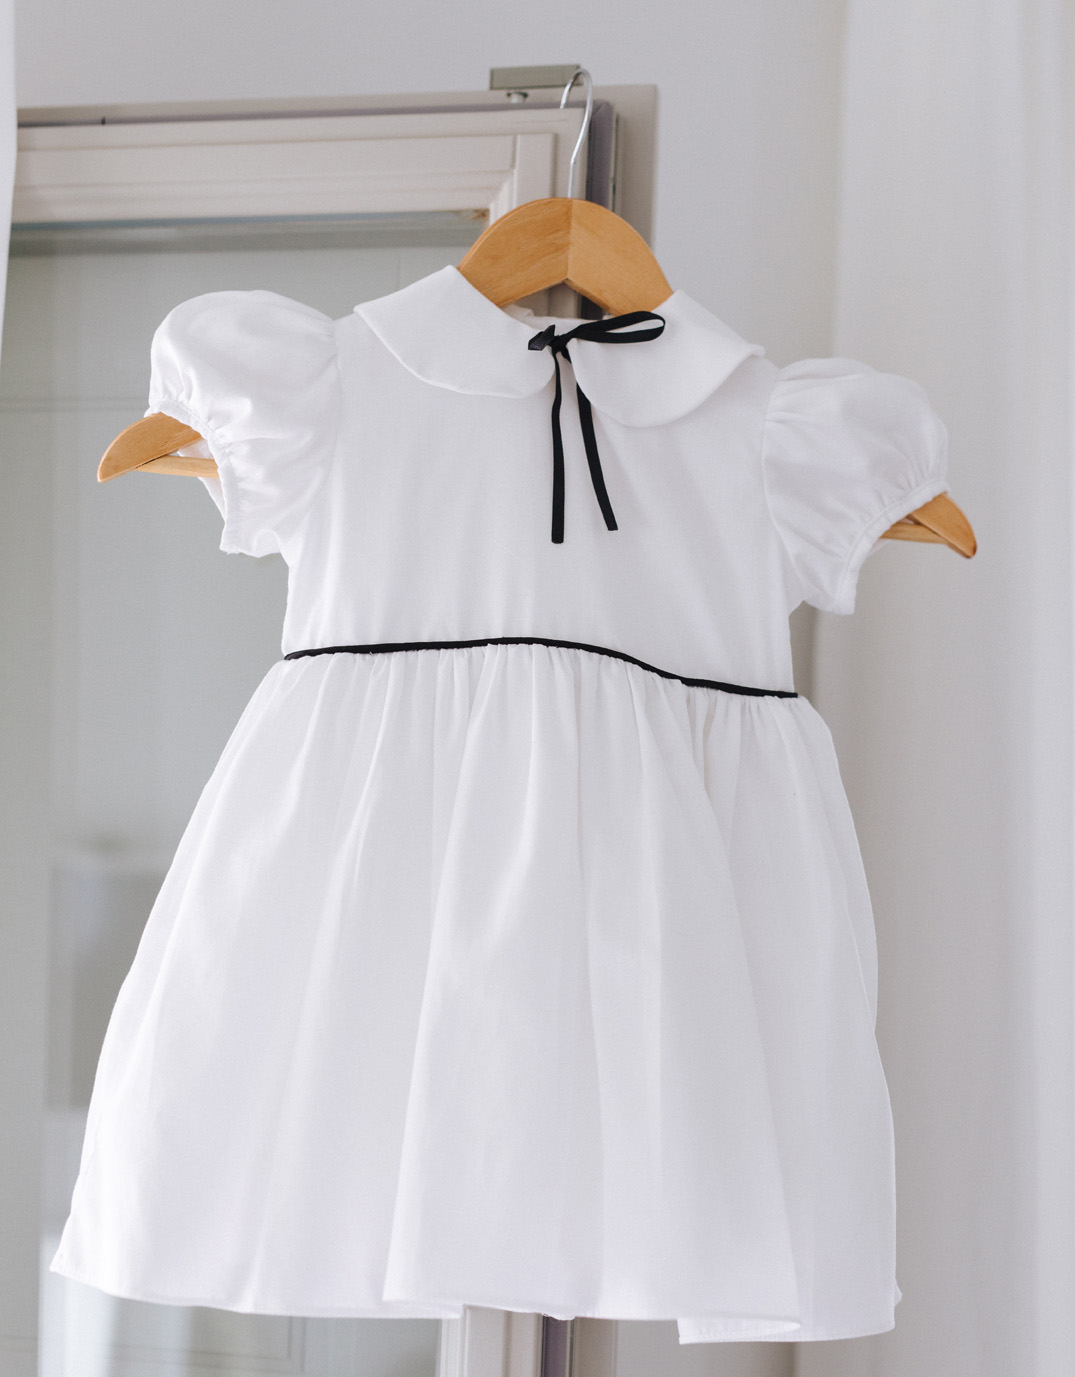 Our Myla flower girl dress is waiting for her owner